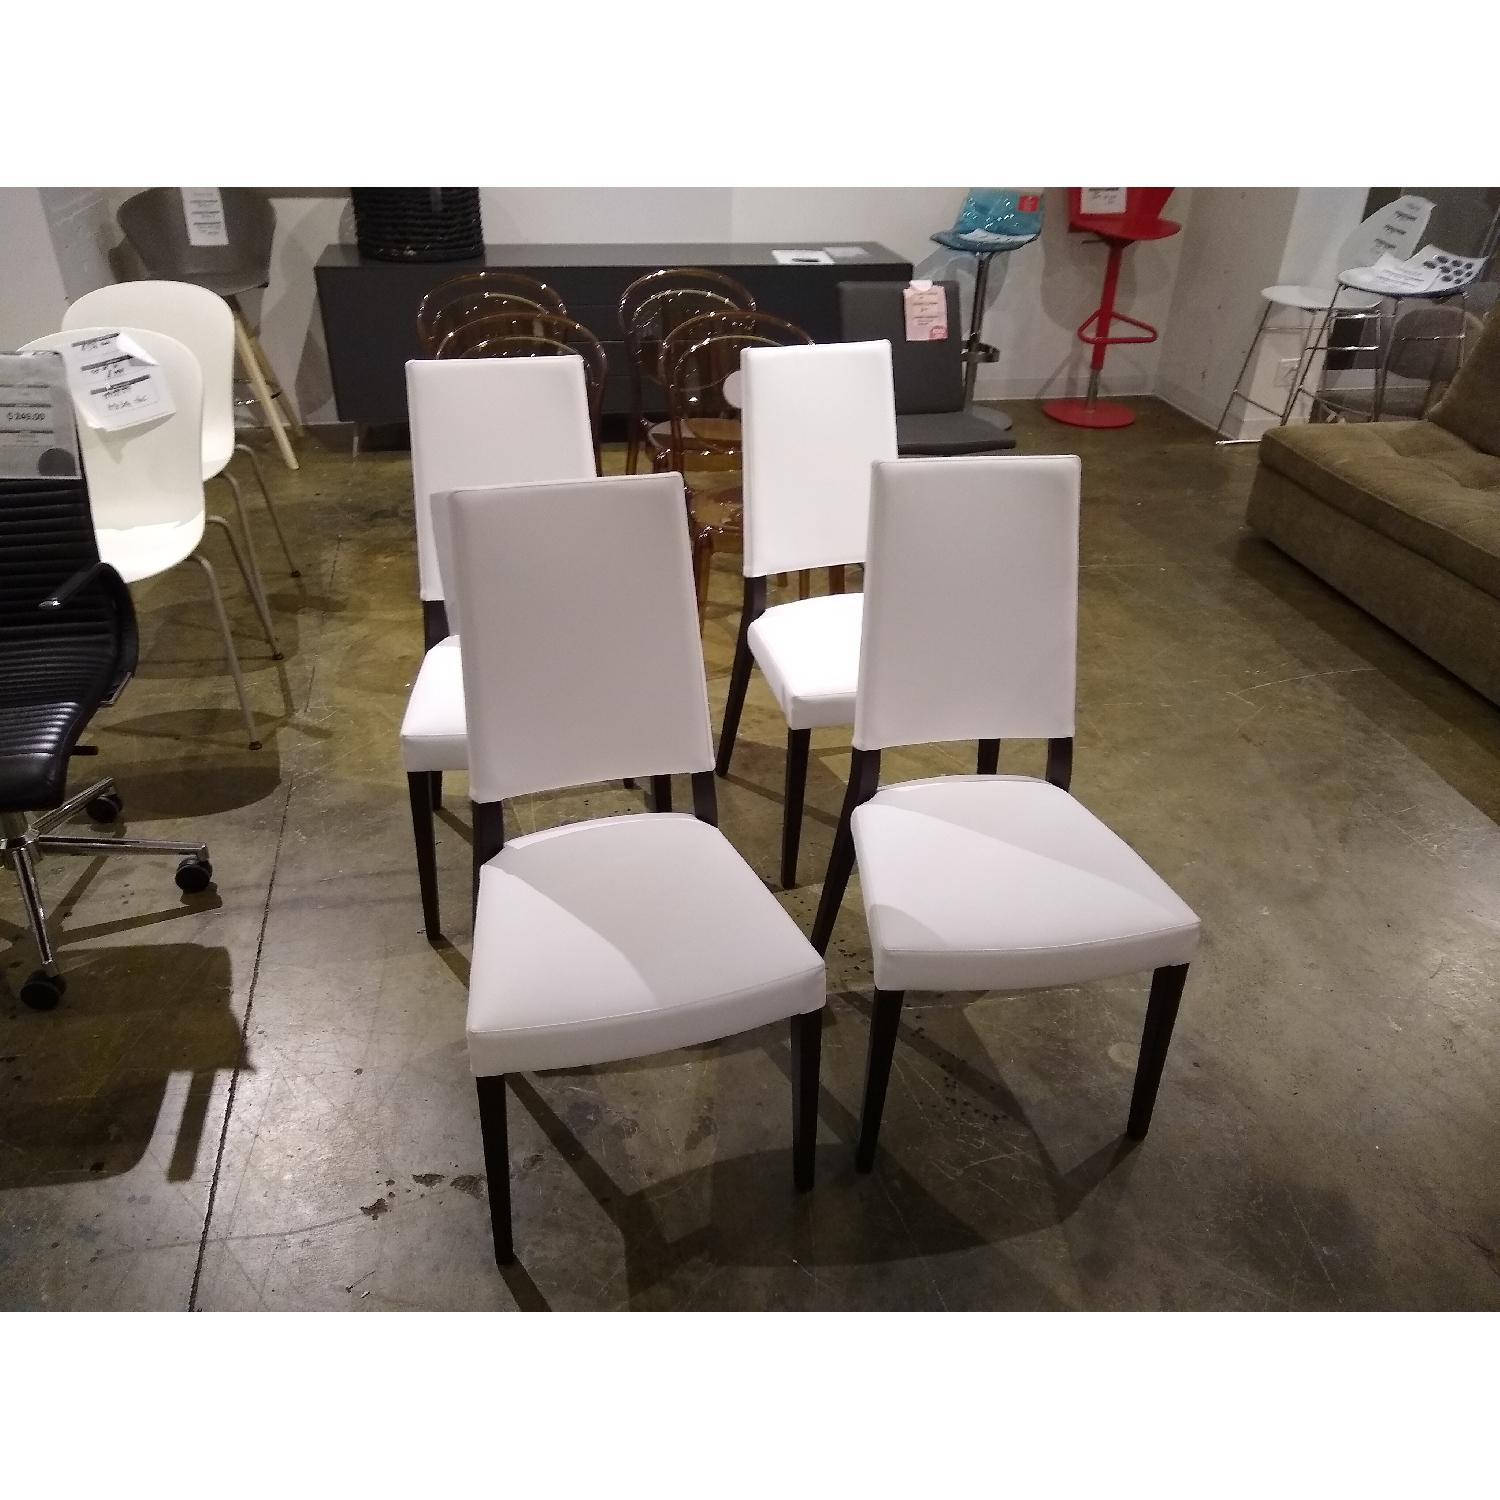 Calligaris Sandy Dining Chairs - image-2